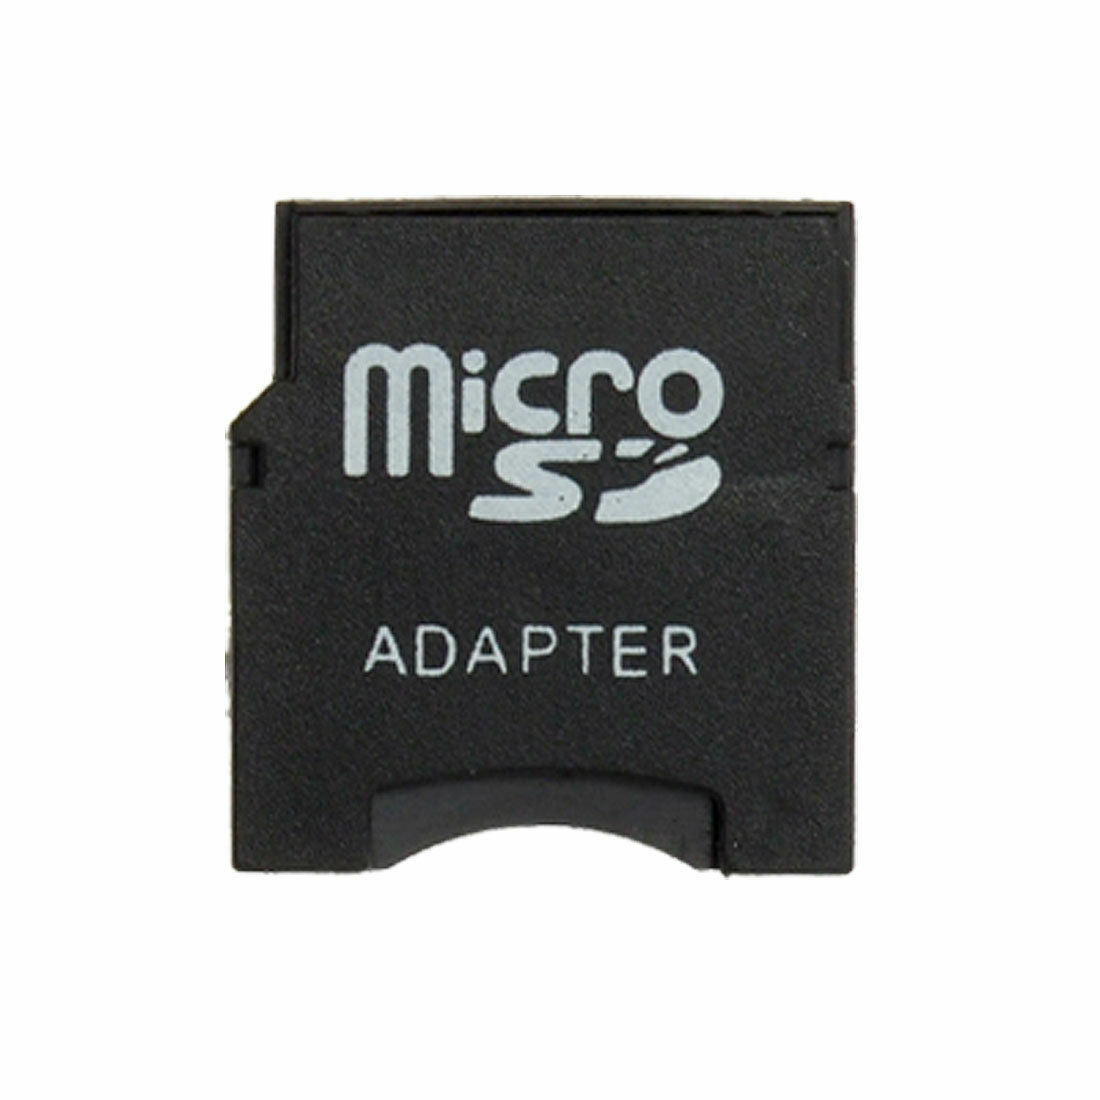 Micro SD to Mini SD Card Adapter Adaptor Converter Reader Adaptateur